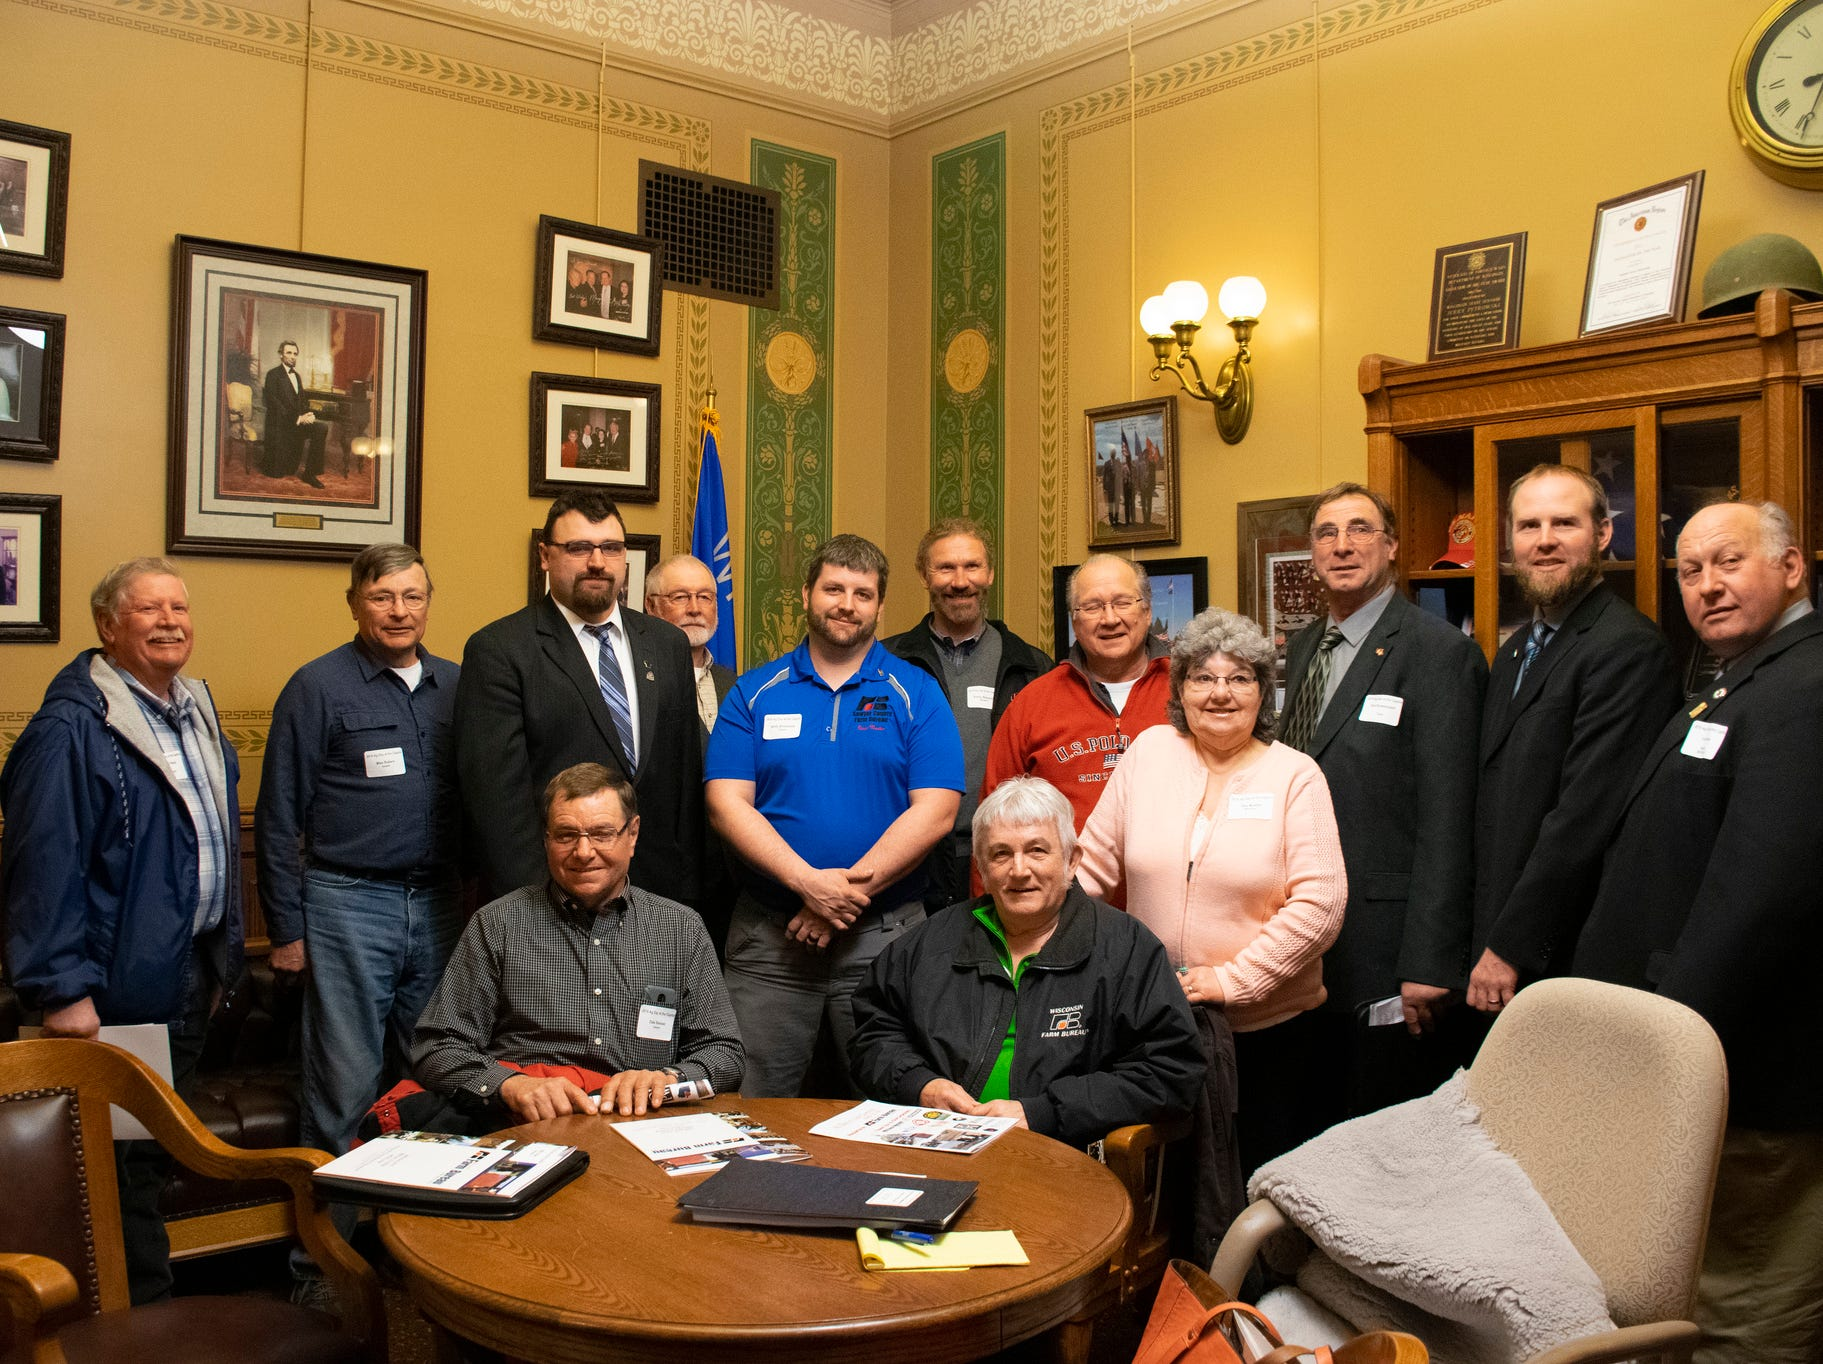 Farm Bureau members from northwestern Wisconsin met with Senator Petrowski during Ag Day at the Capitol.